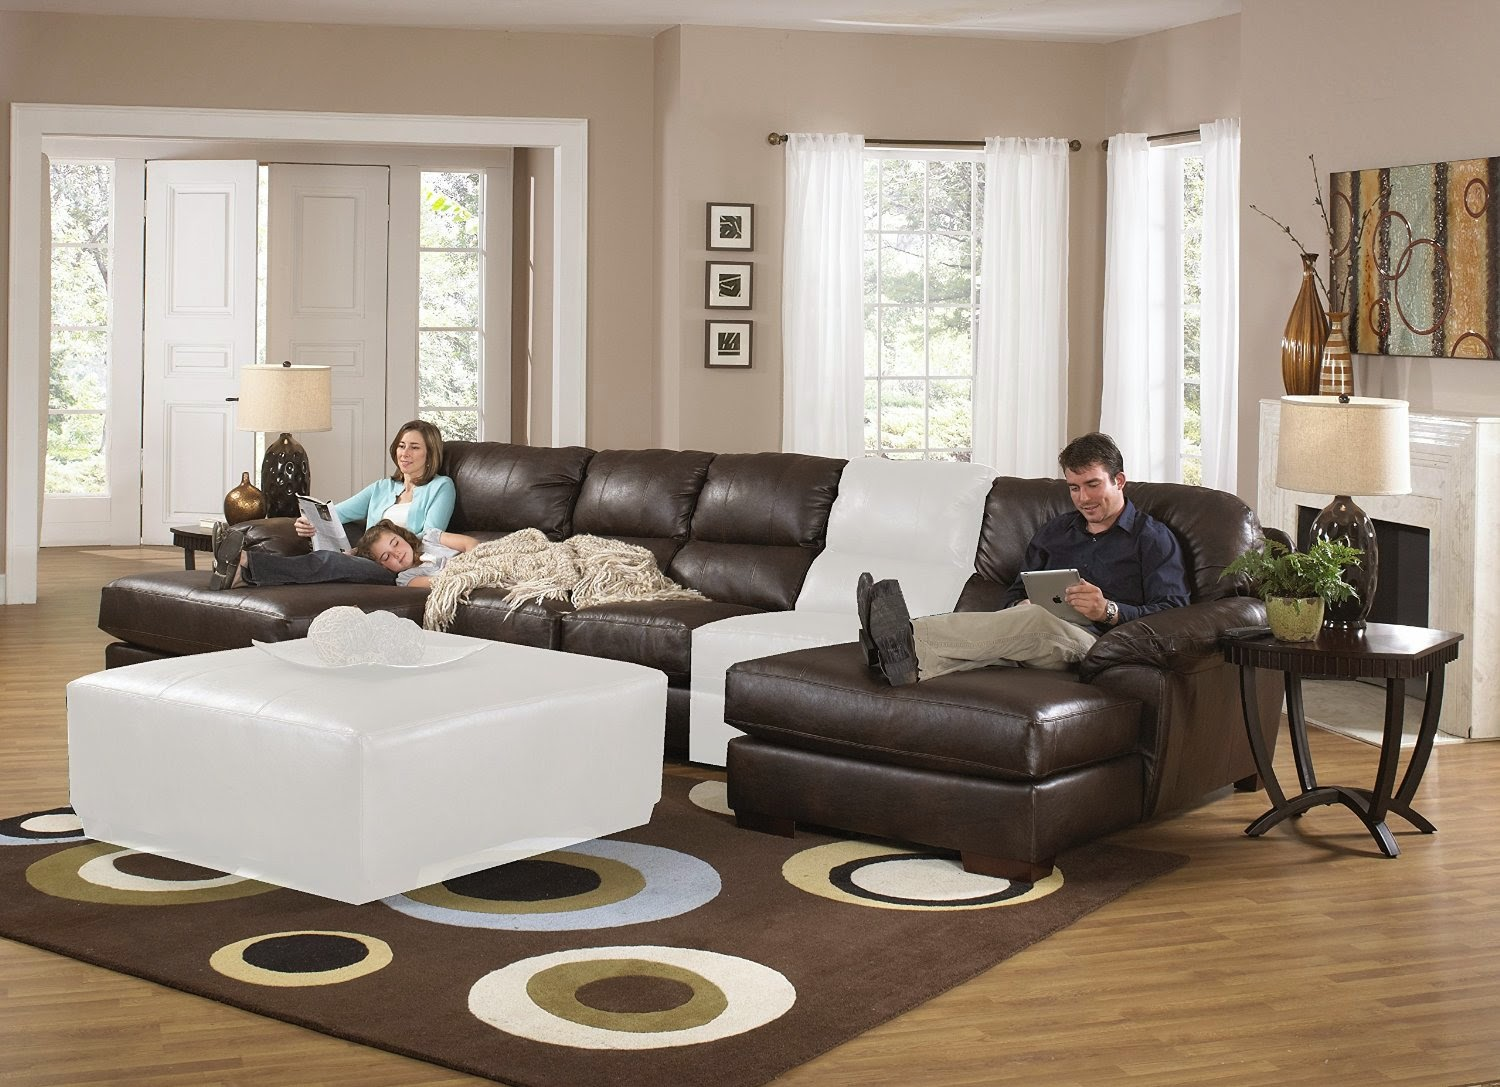 Sectional Reclining Sofas | Bonded Leather Sectional Sofa with Recliners | Recliner  Sectional Sofa